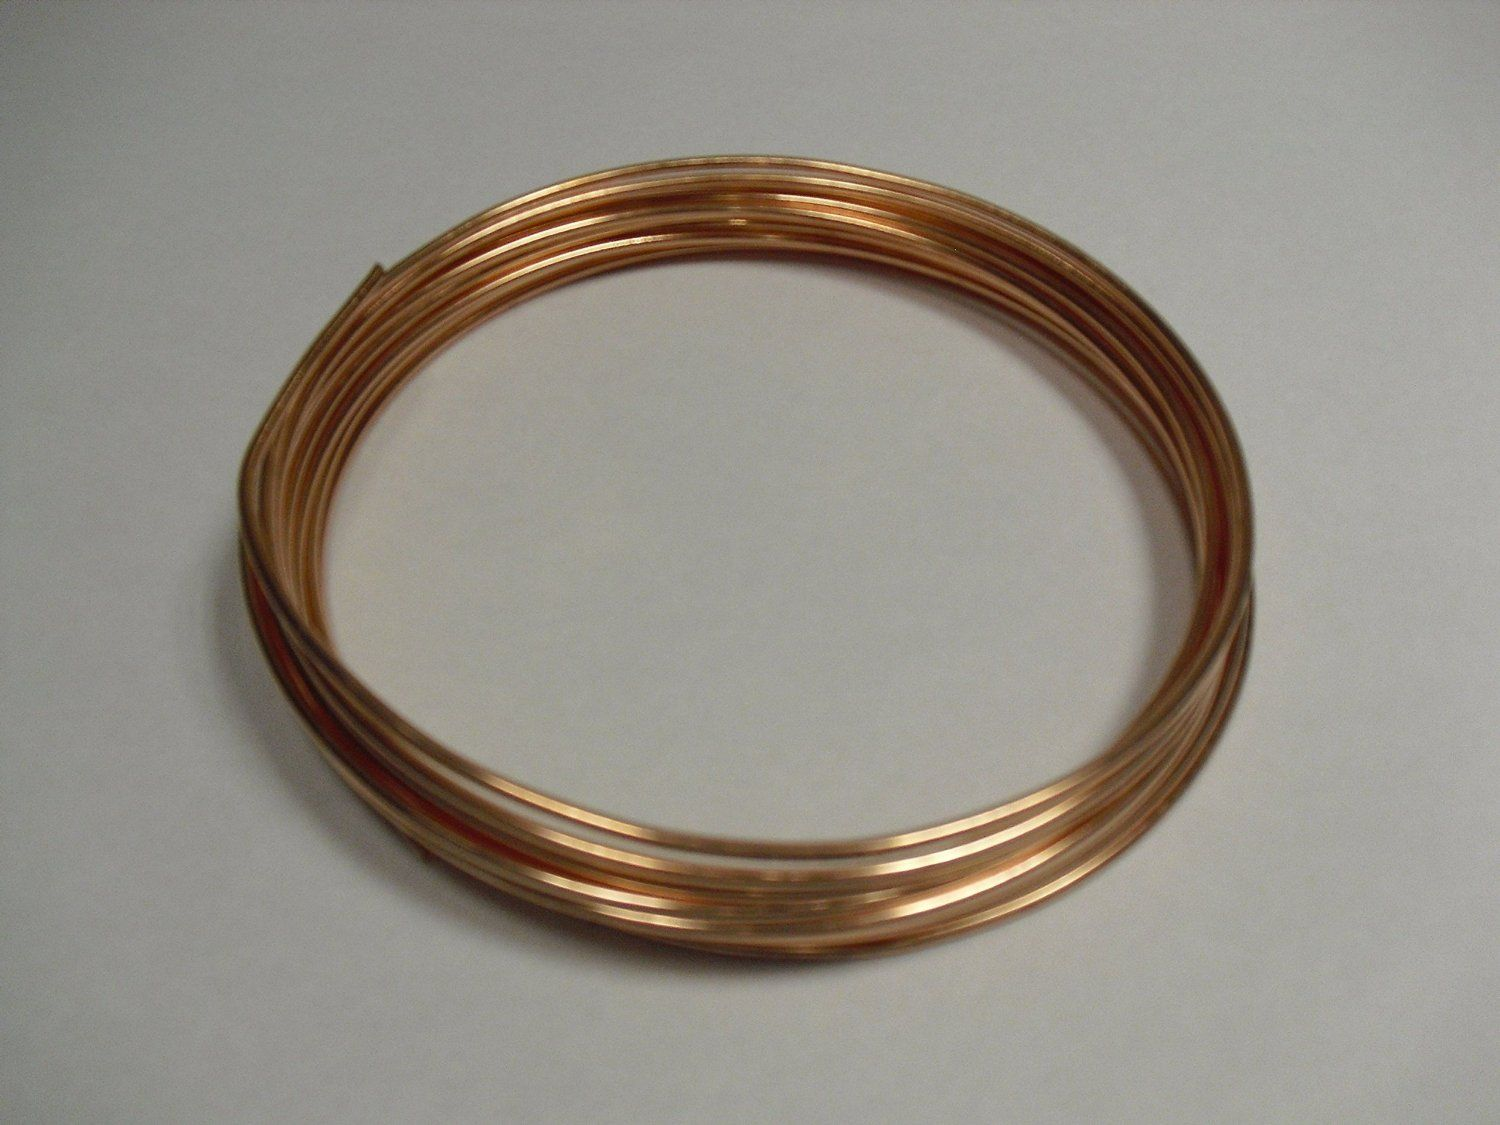 COPPER WIRE BARE UNCOATED UNPLATED 500grams - 8 gauge - 3.25mm ...